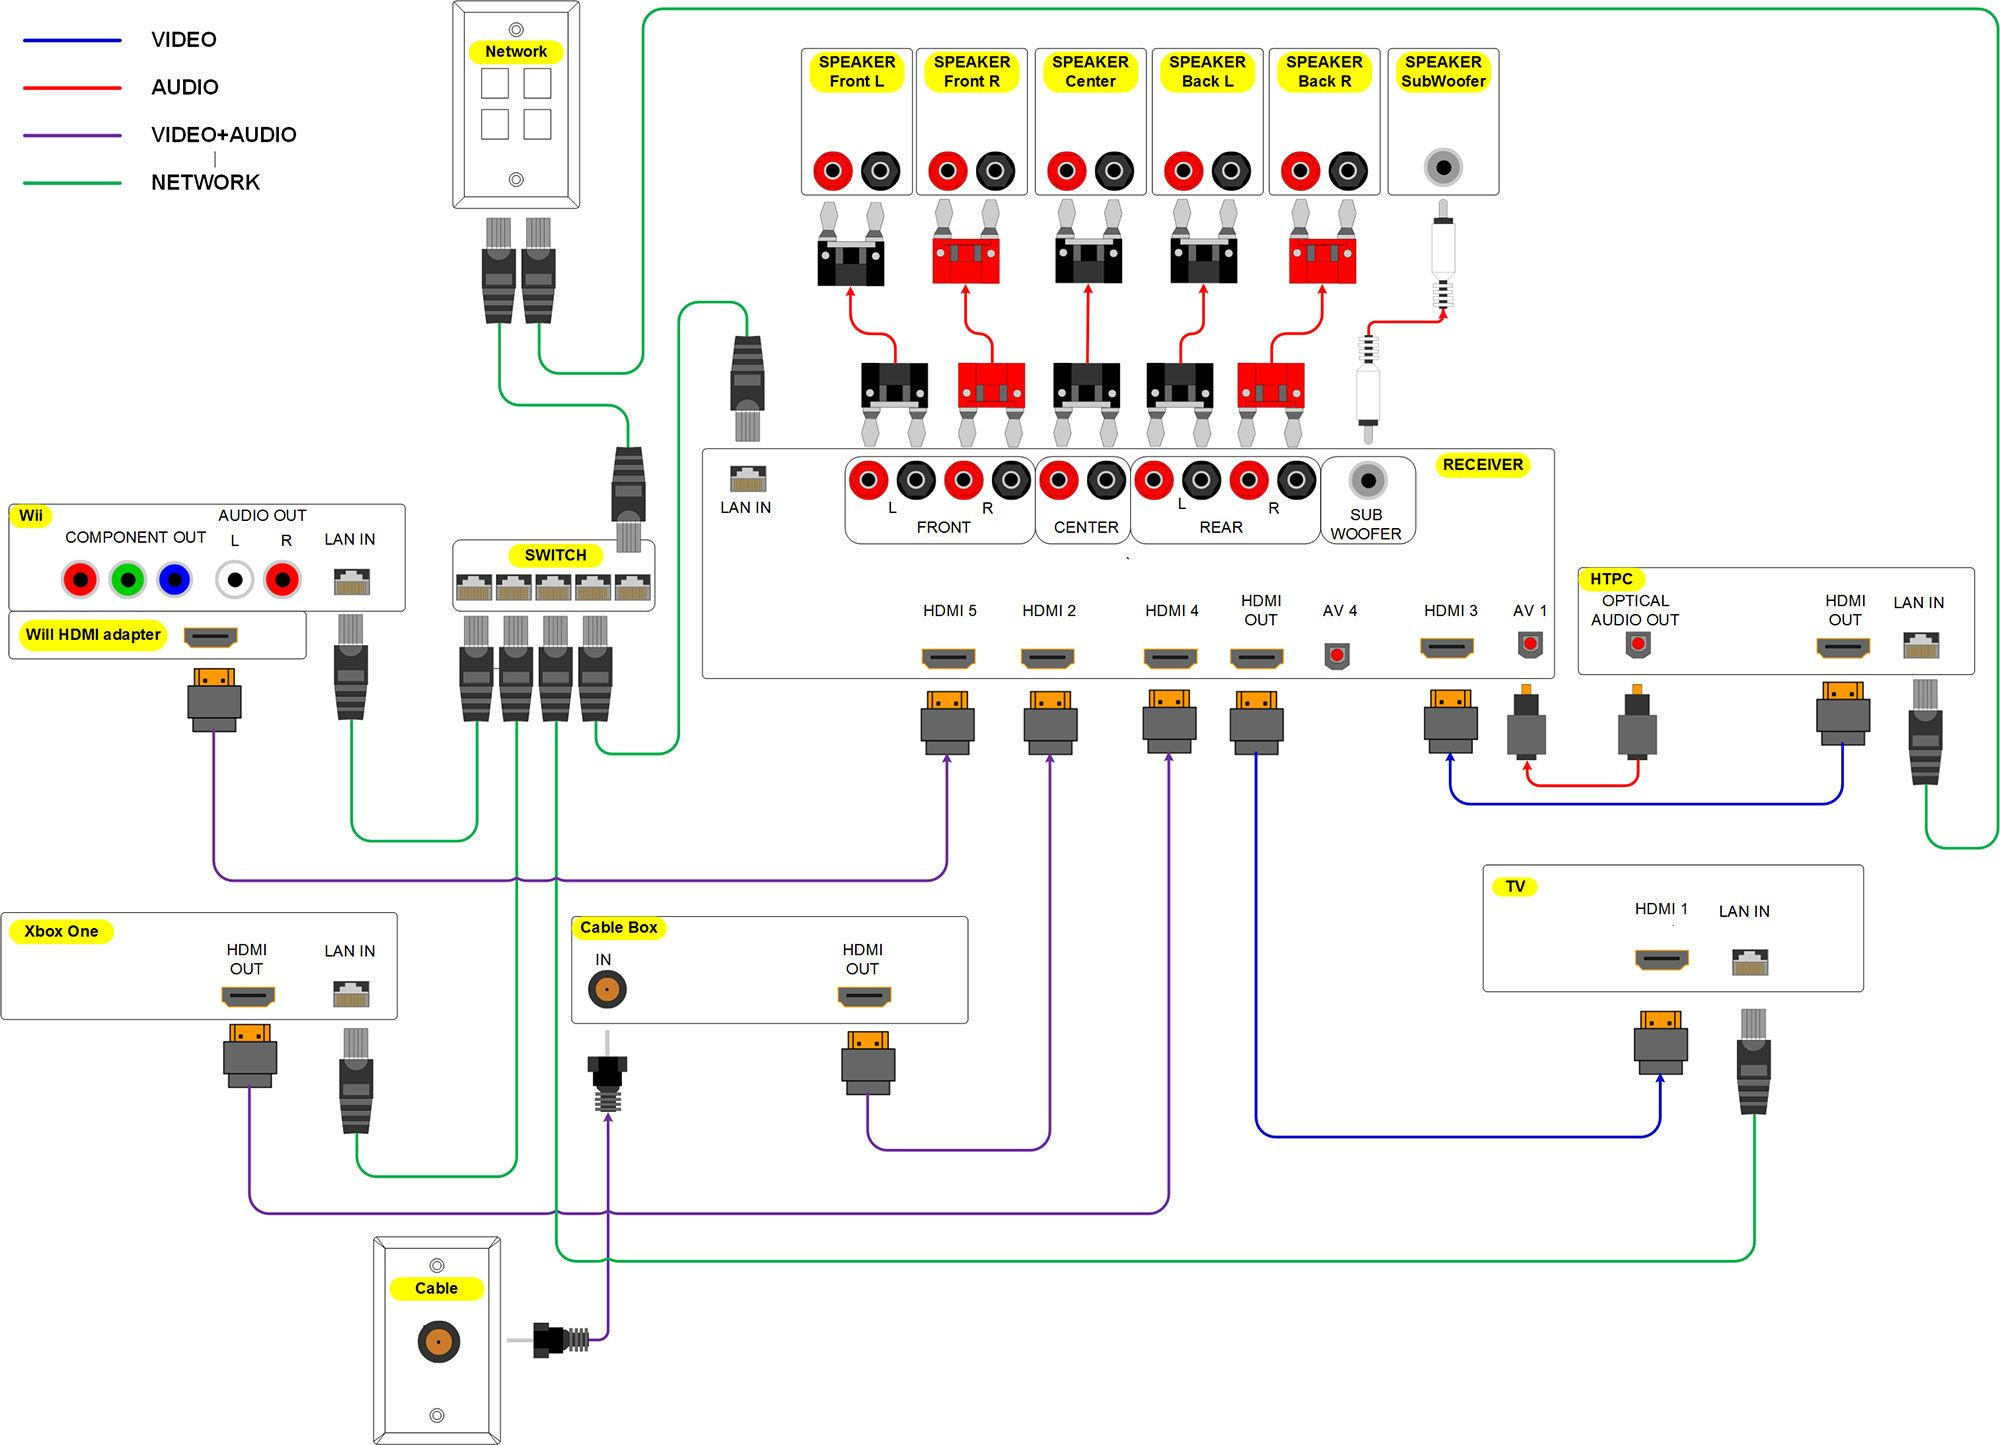 Home Audio Wiring Diagram - Today Wiring Diagram - Home Speaker Wiring Diagram